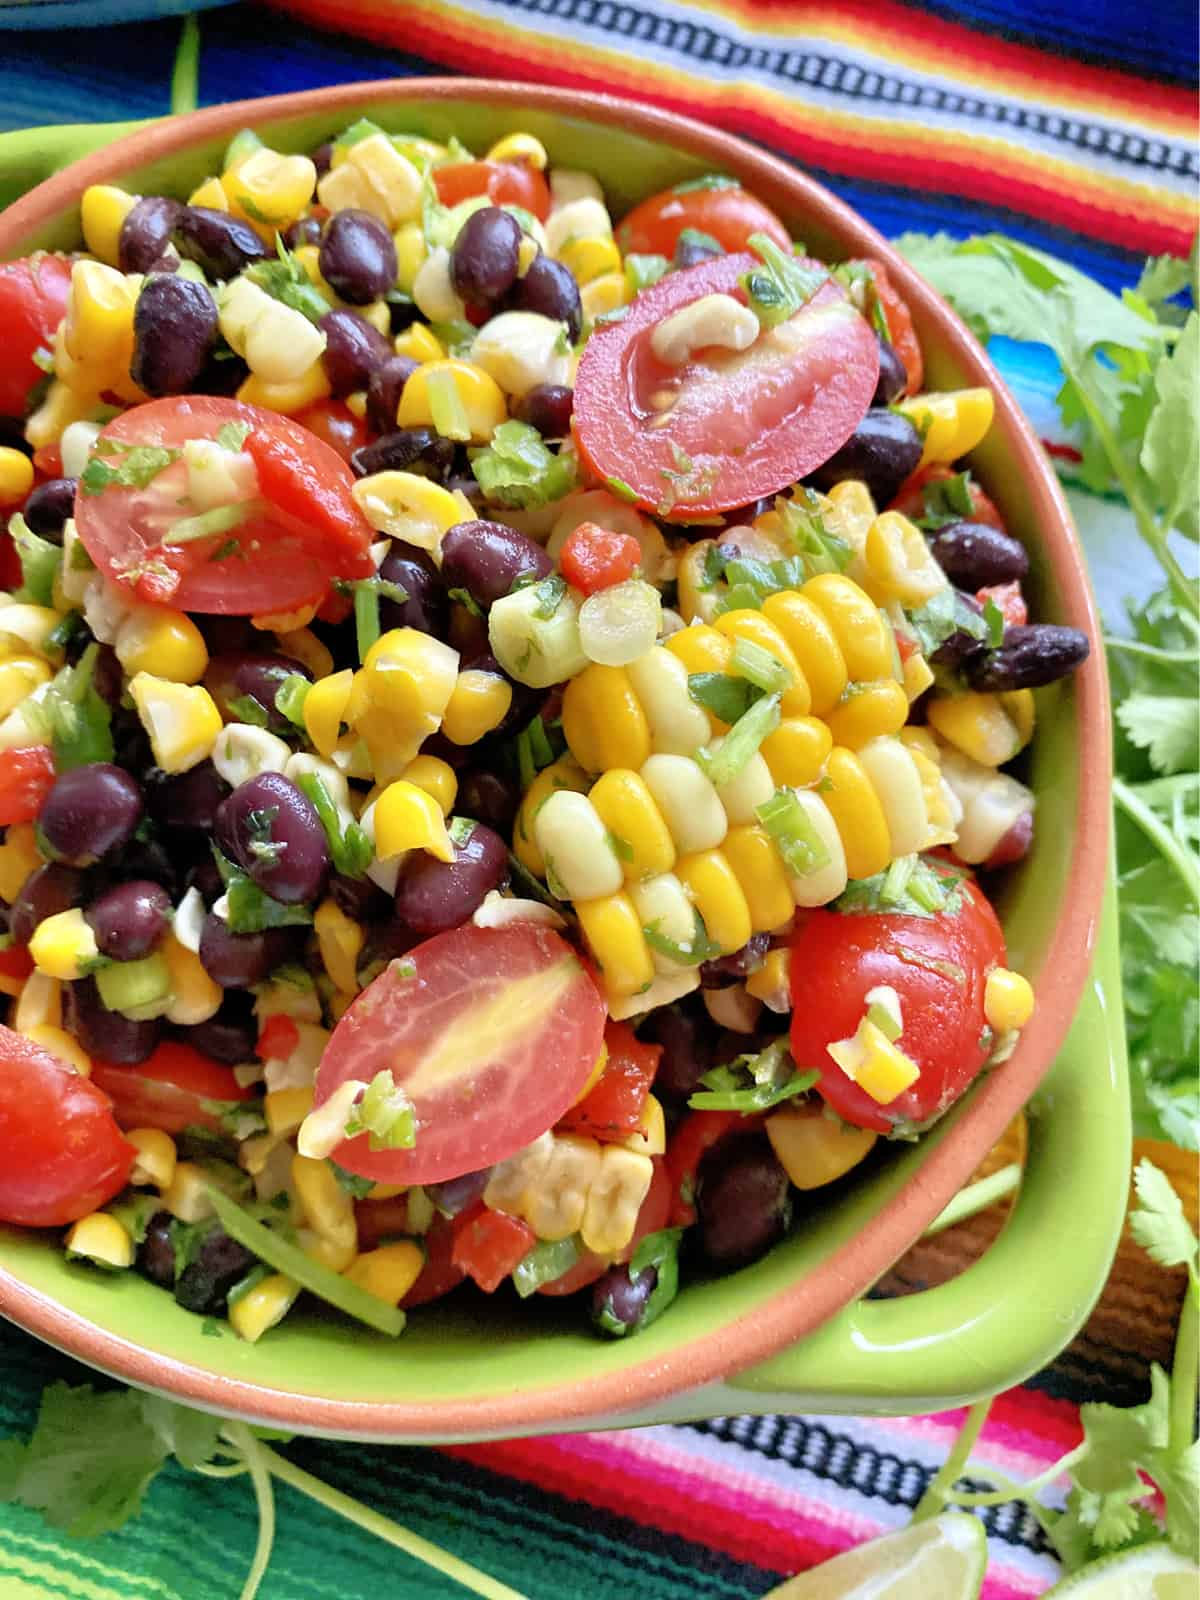 Top view of a green bowl filled with corn kernels, sliced grape tomatoes, cilantro, and black beans.